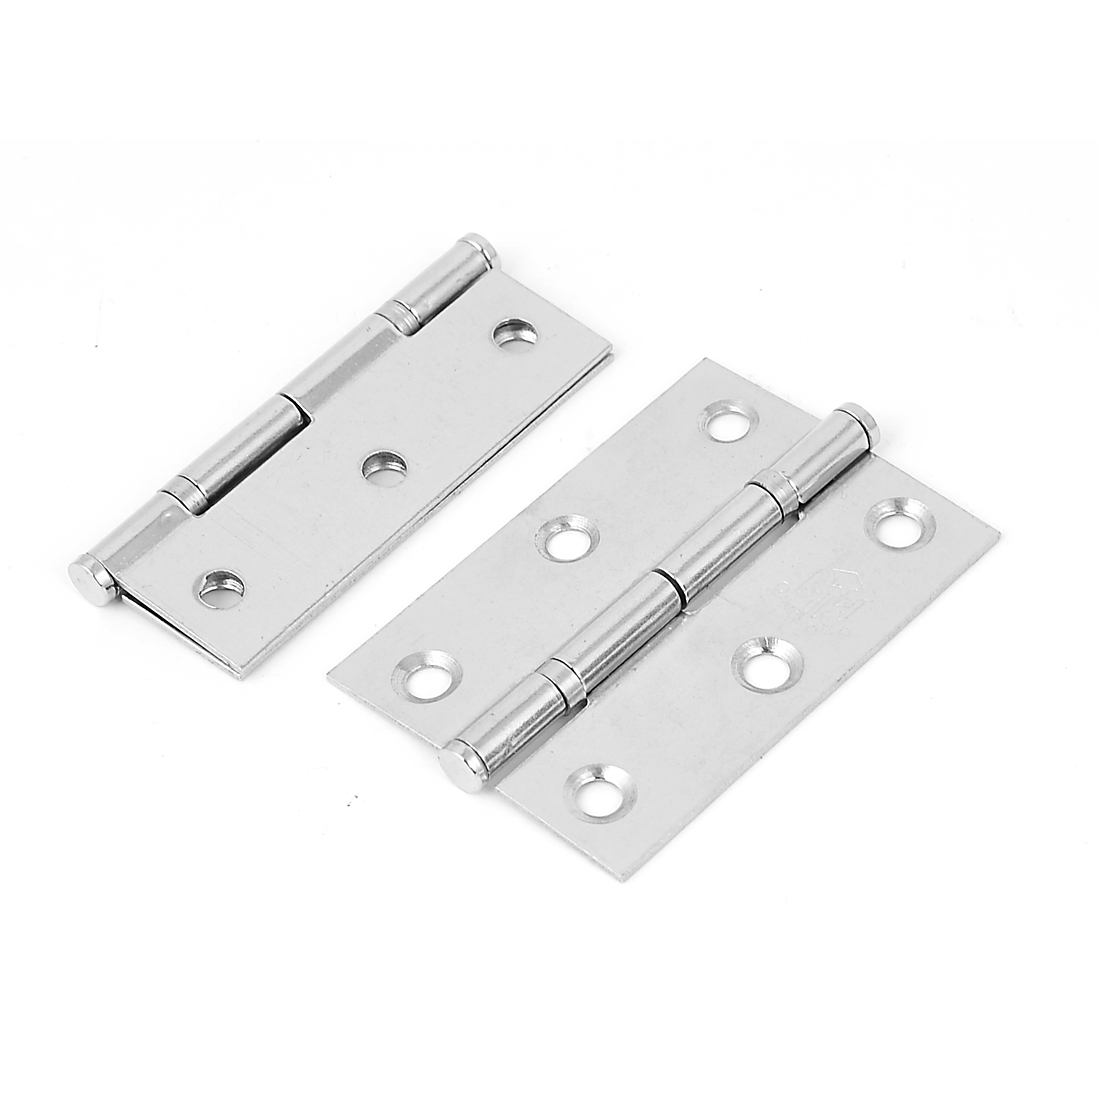 "2.5"" Length Metal Foldable Furniture Door Butt Bearing Hinges Hardware 2pcs"